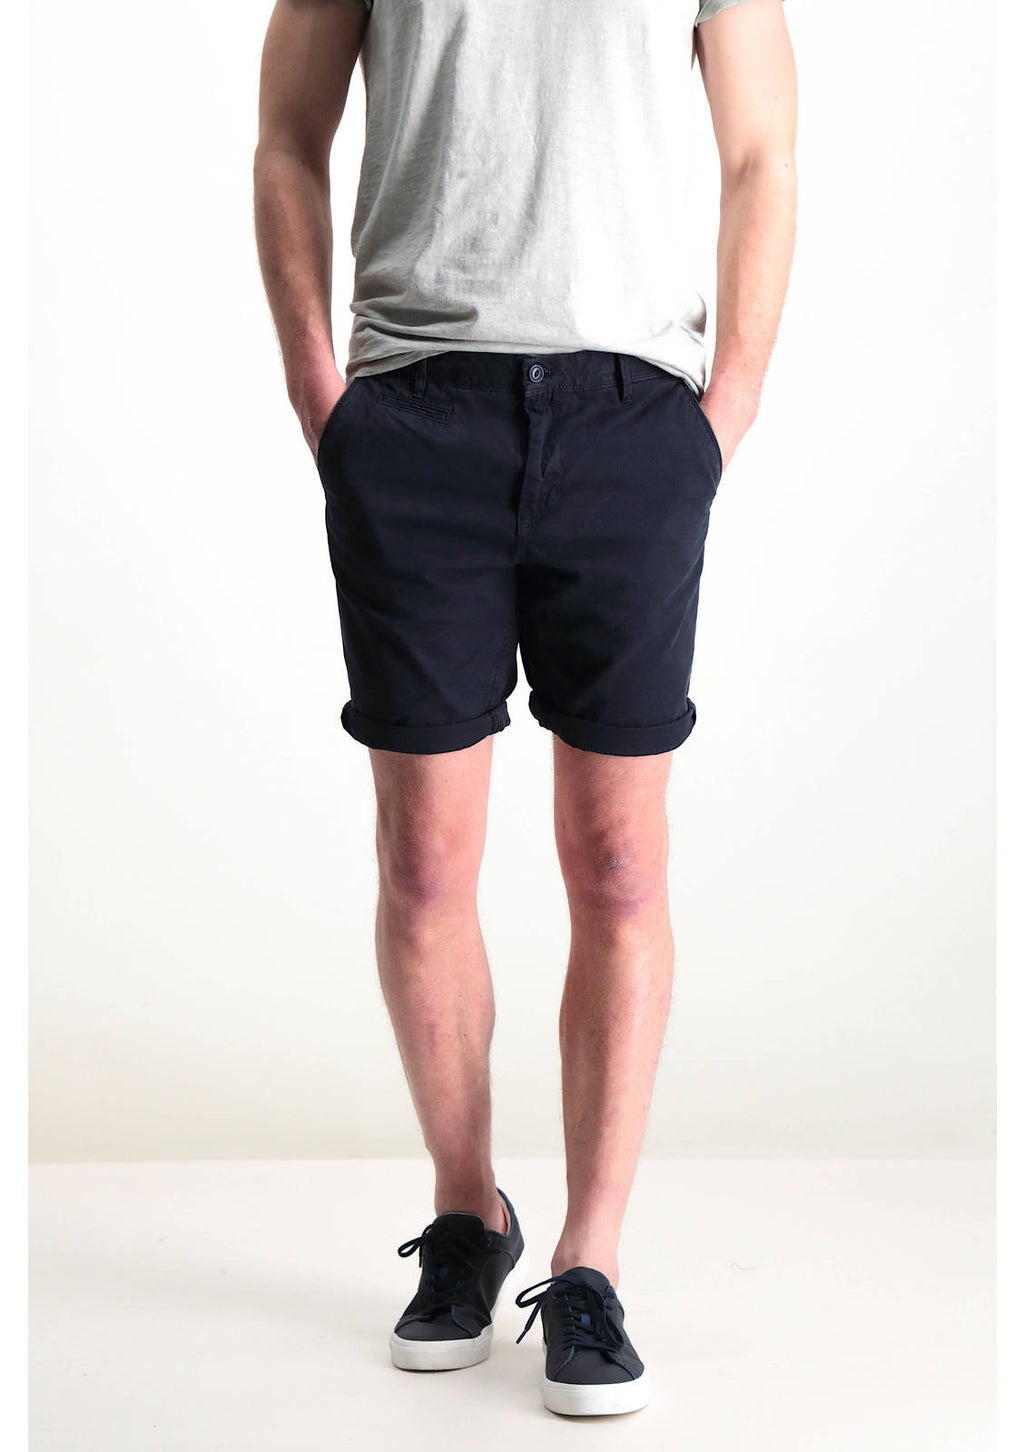 Garcia Santo Dark Moon Short - REDUCED!!